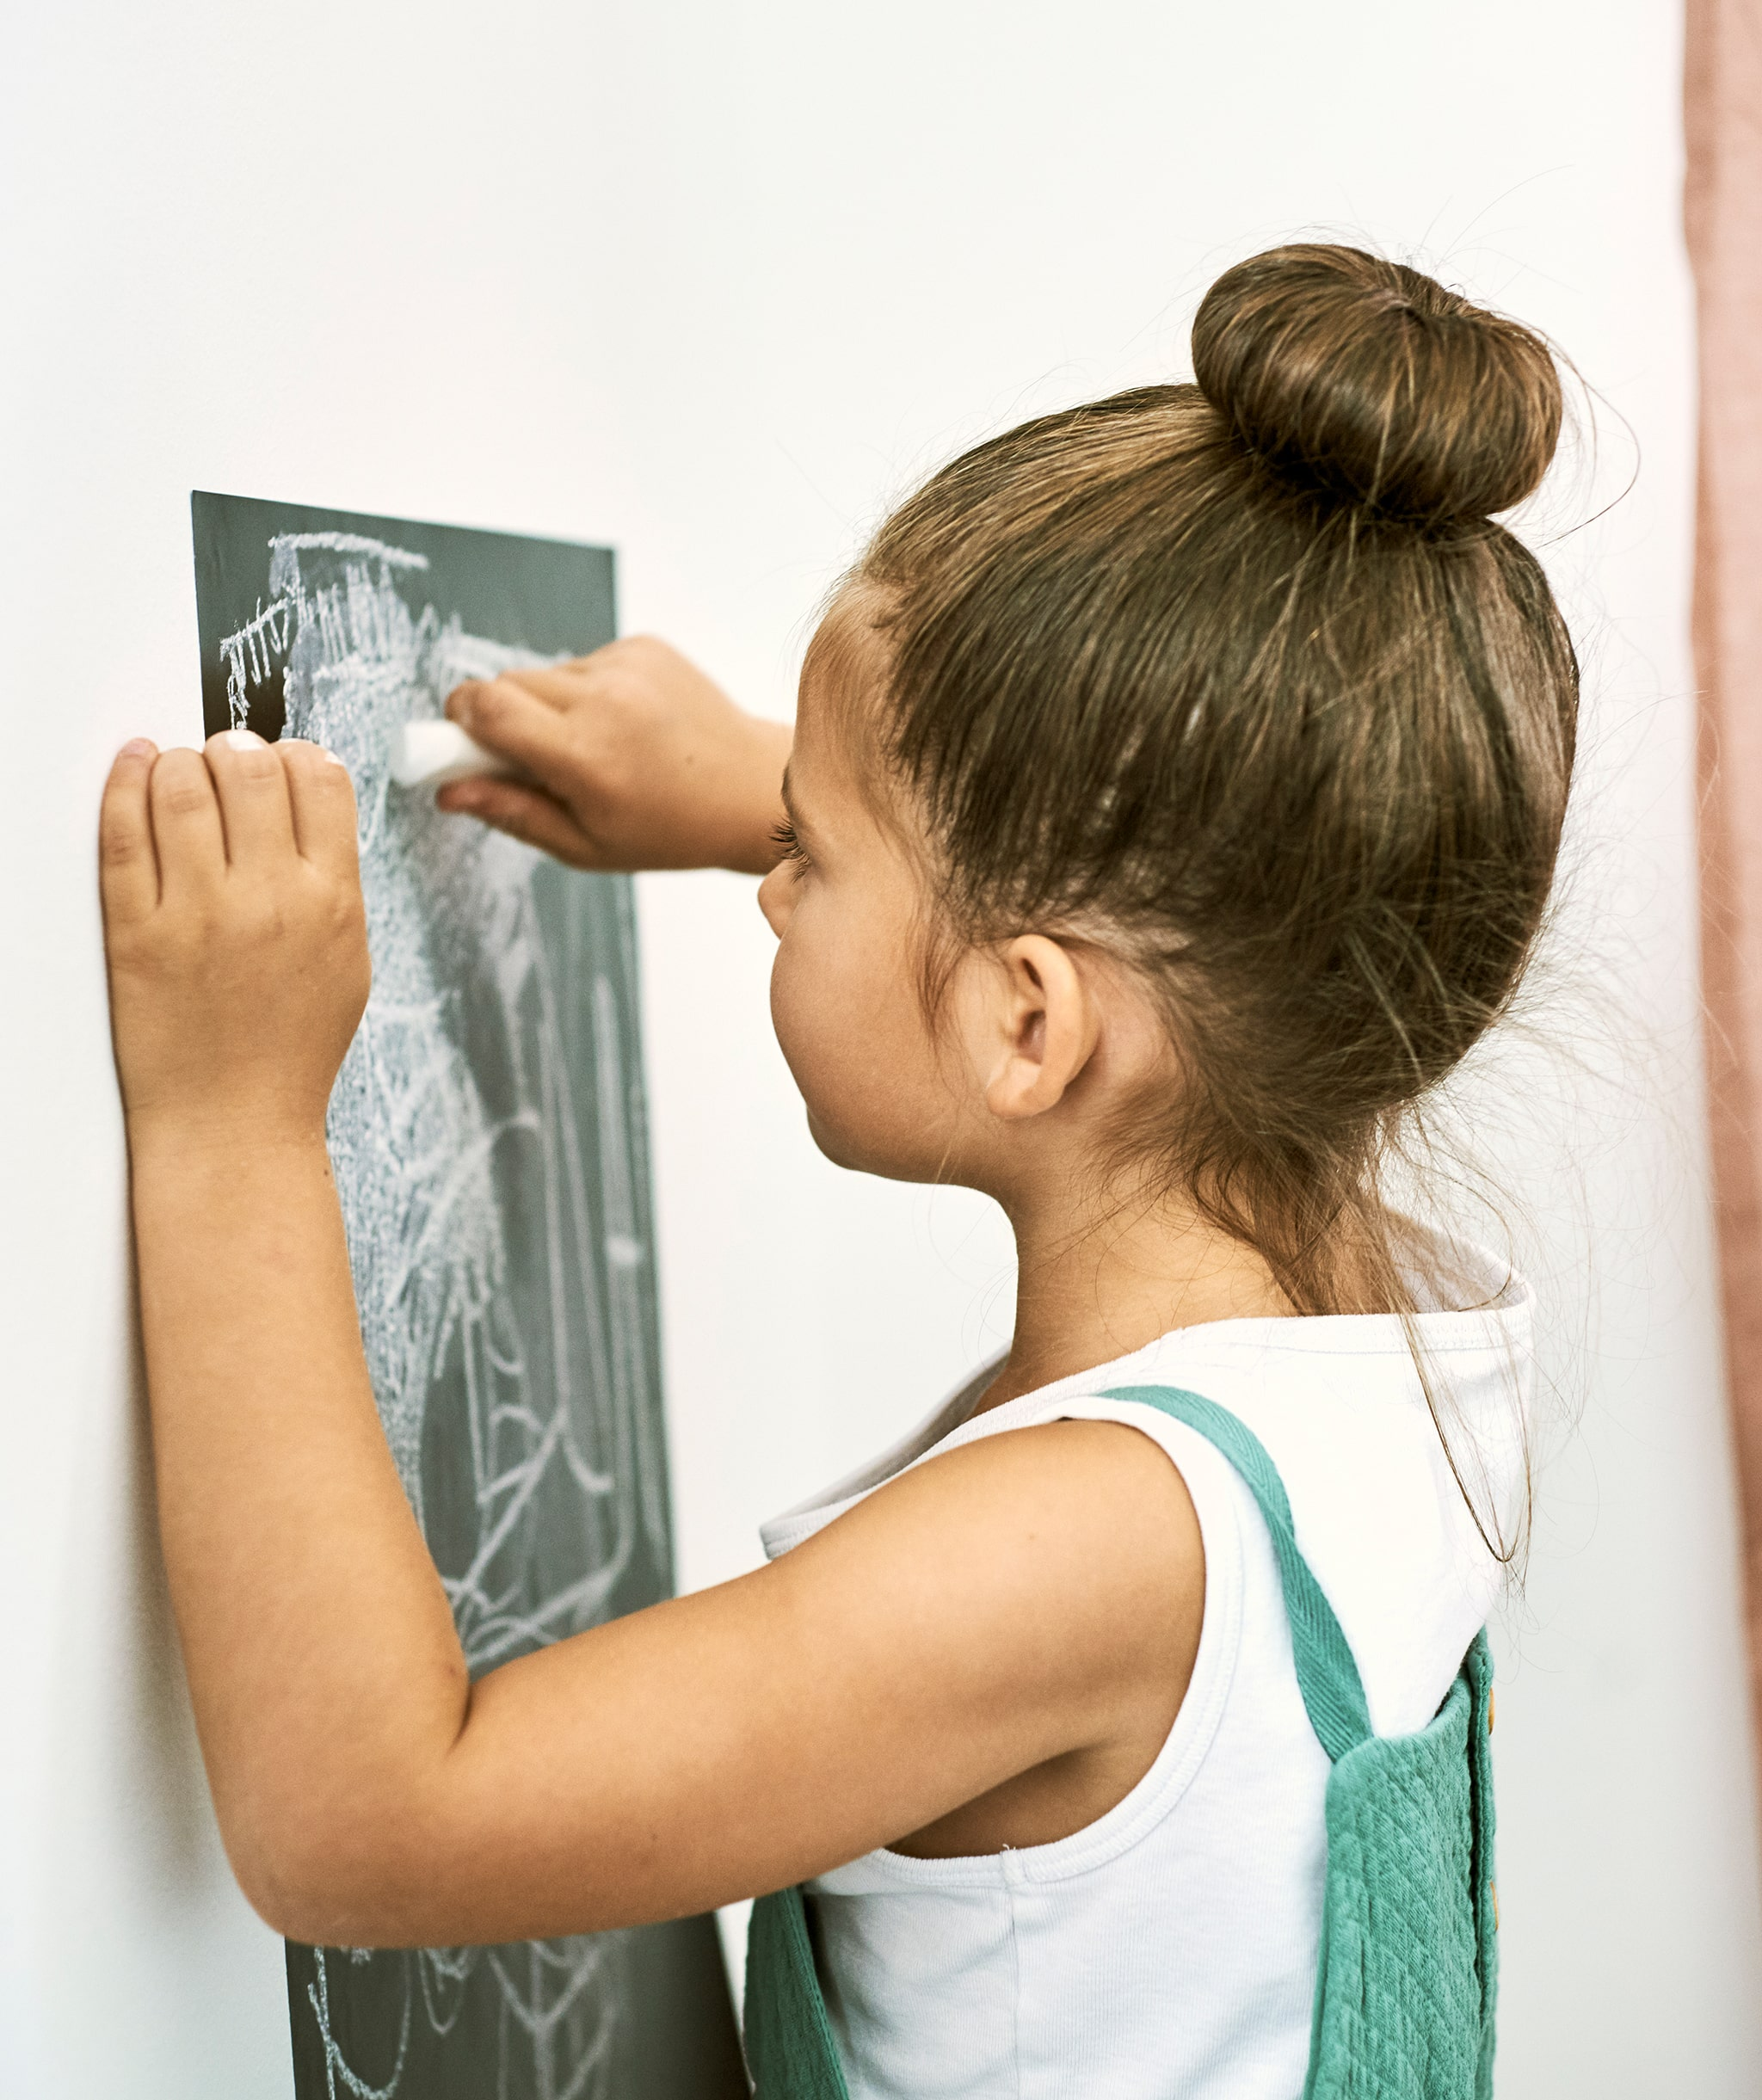 A girl uses a stick of chalk to draw on a chalkboard wall sticker that is stuck to a white wall.